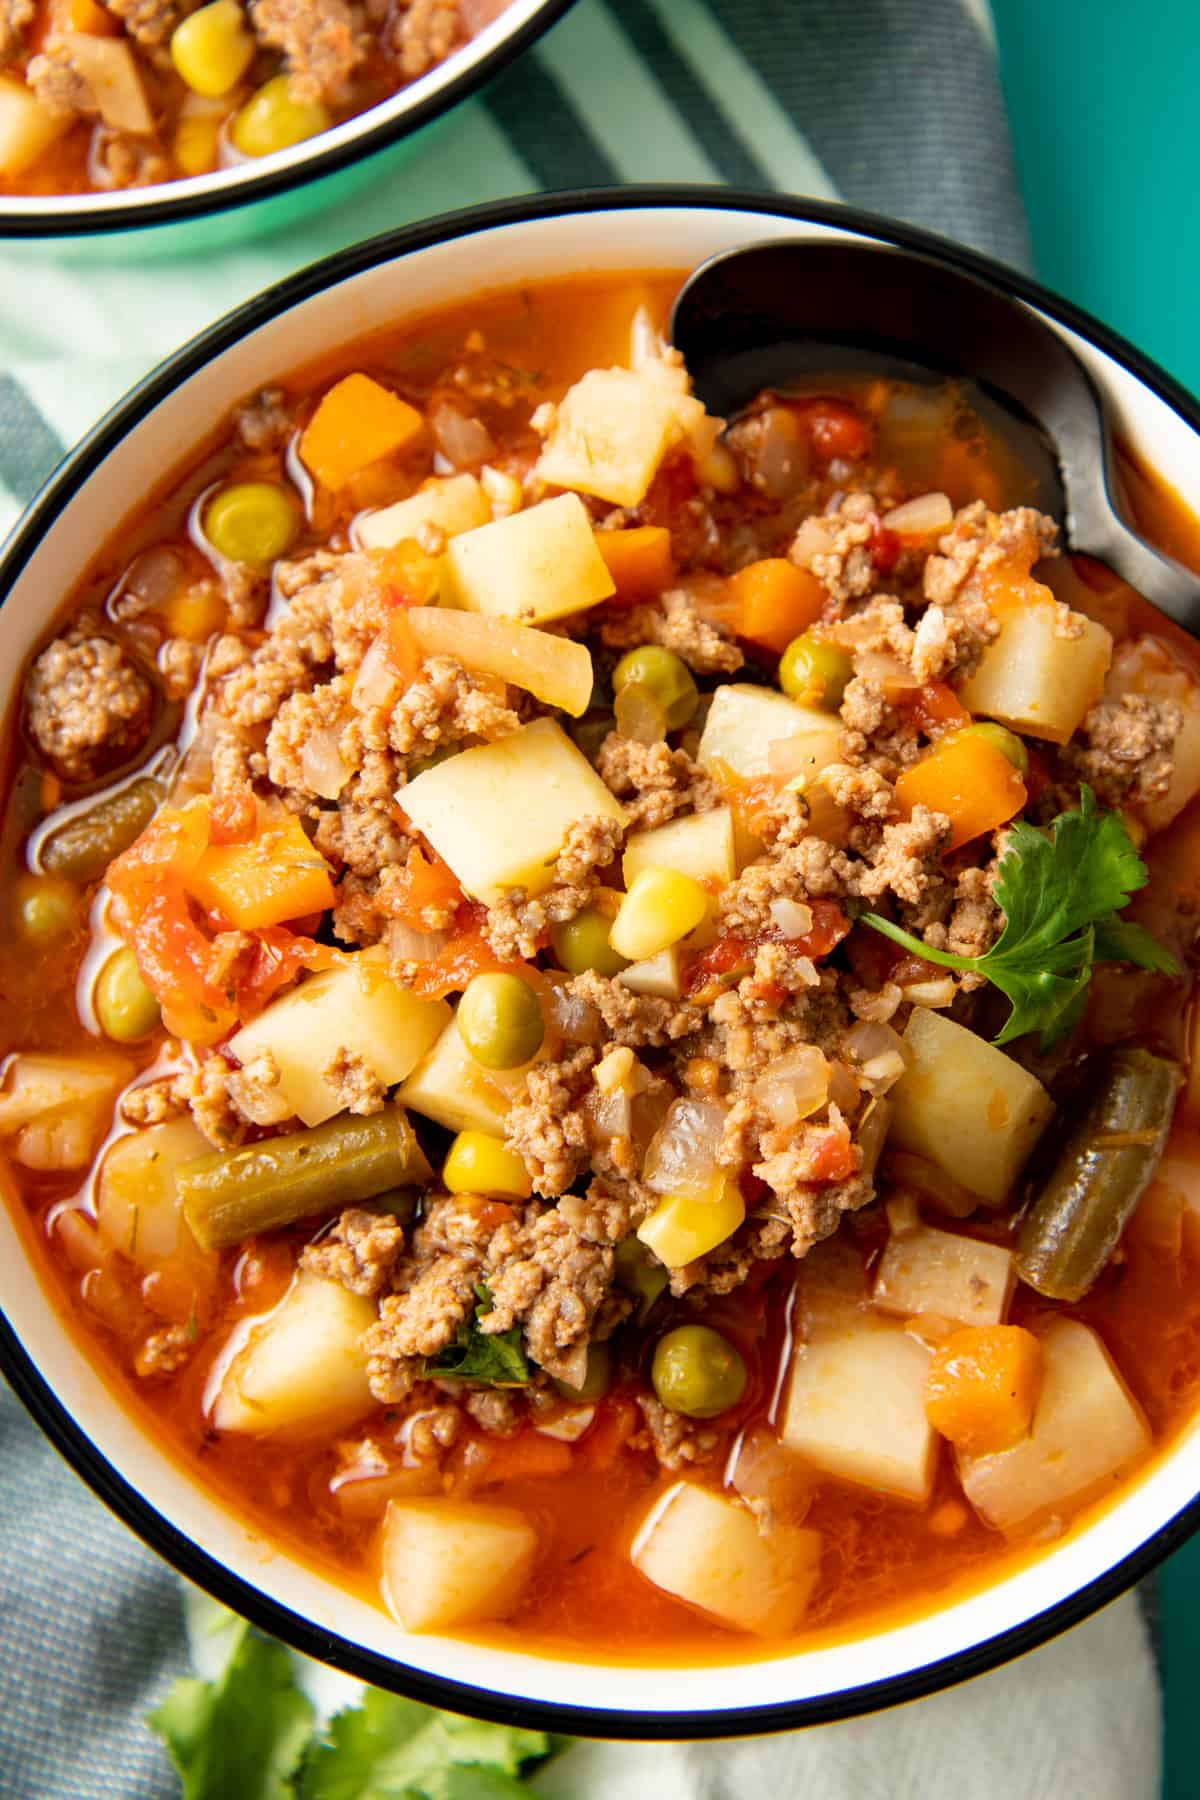 A soup filled with vegetables, potatoes, and beef fills a white bowl with a black rim.